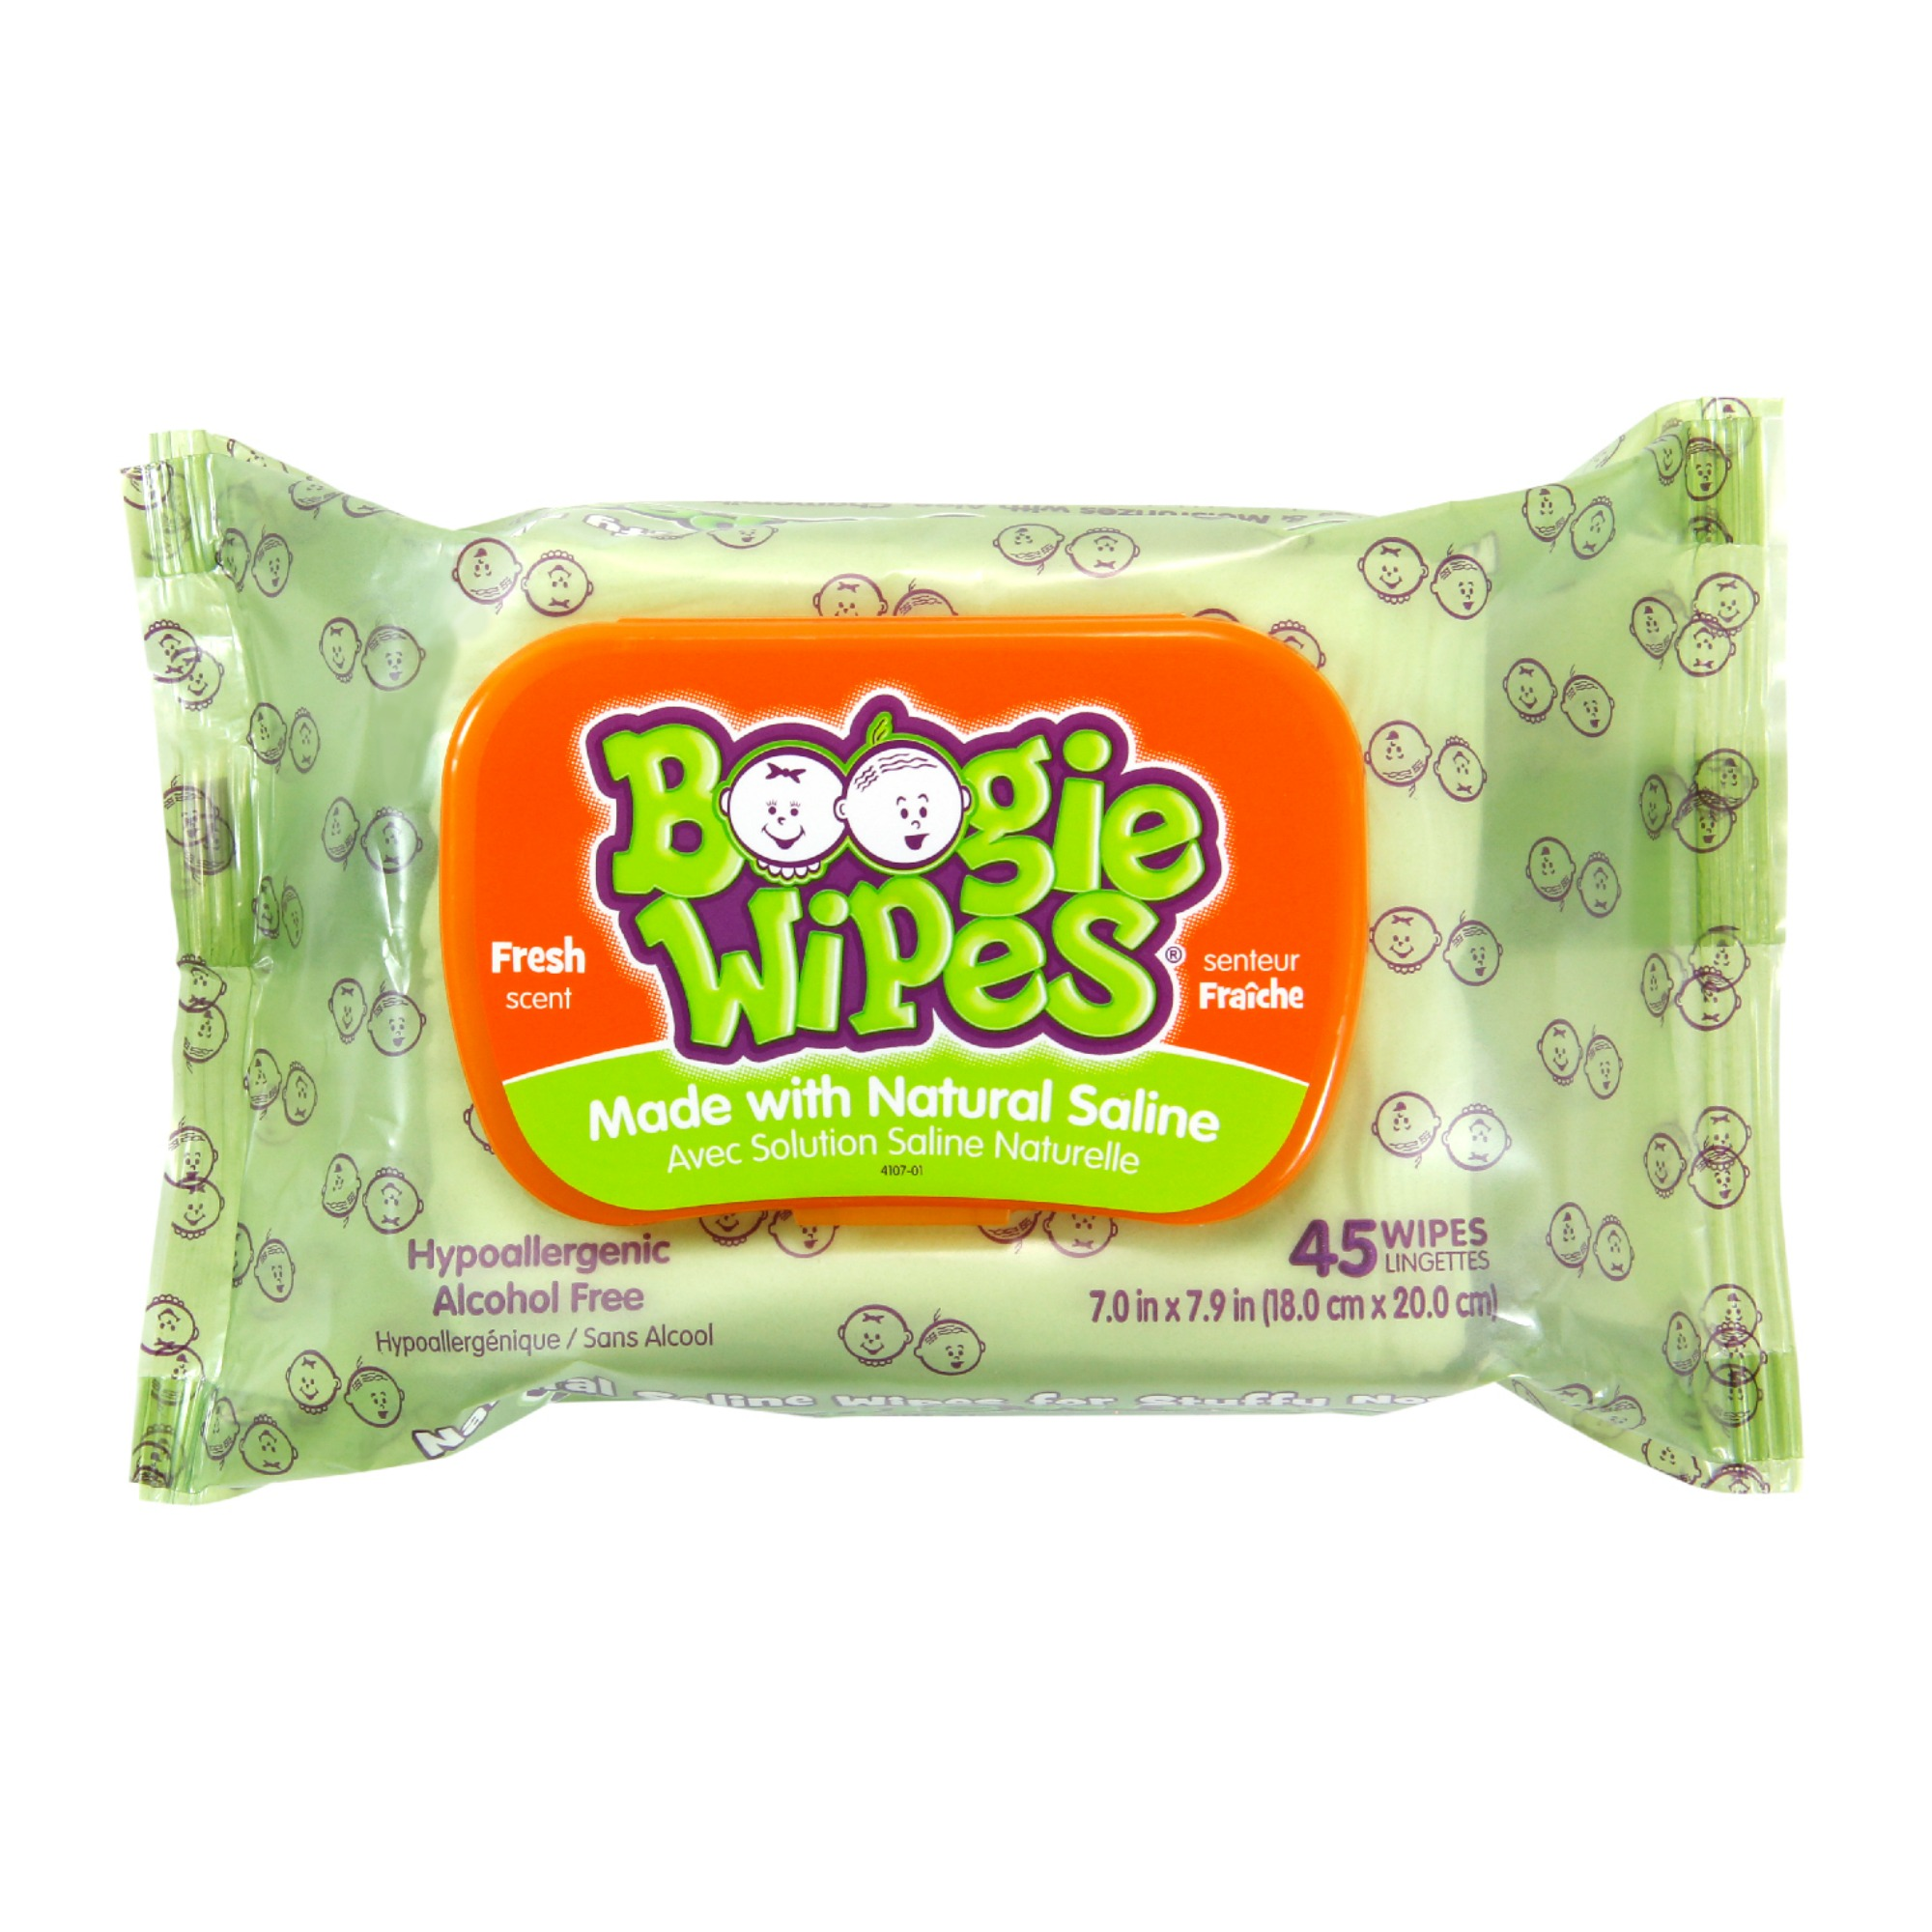 Boogie Wipes fresh scent 45 count pack